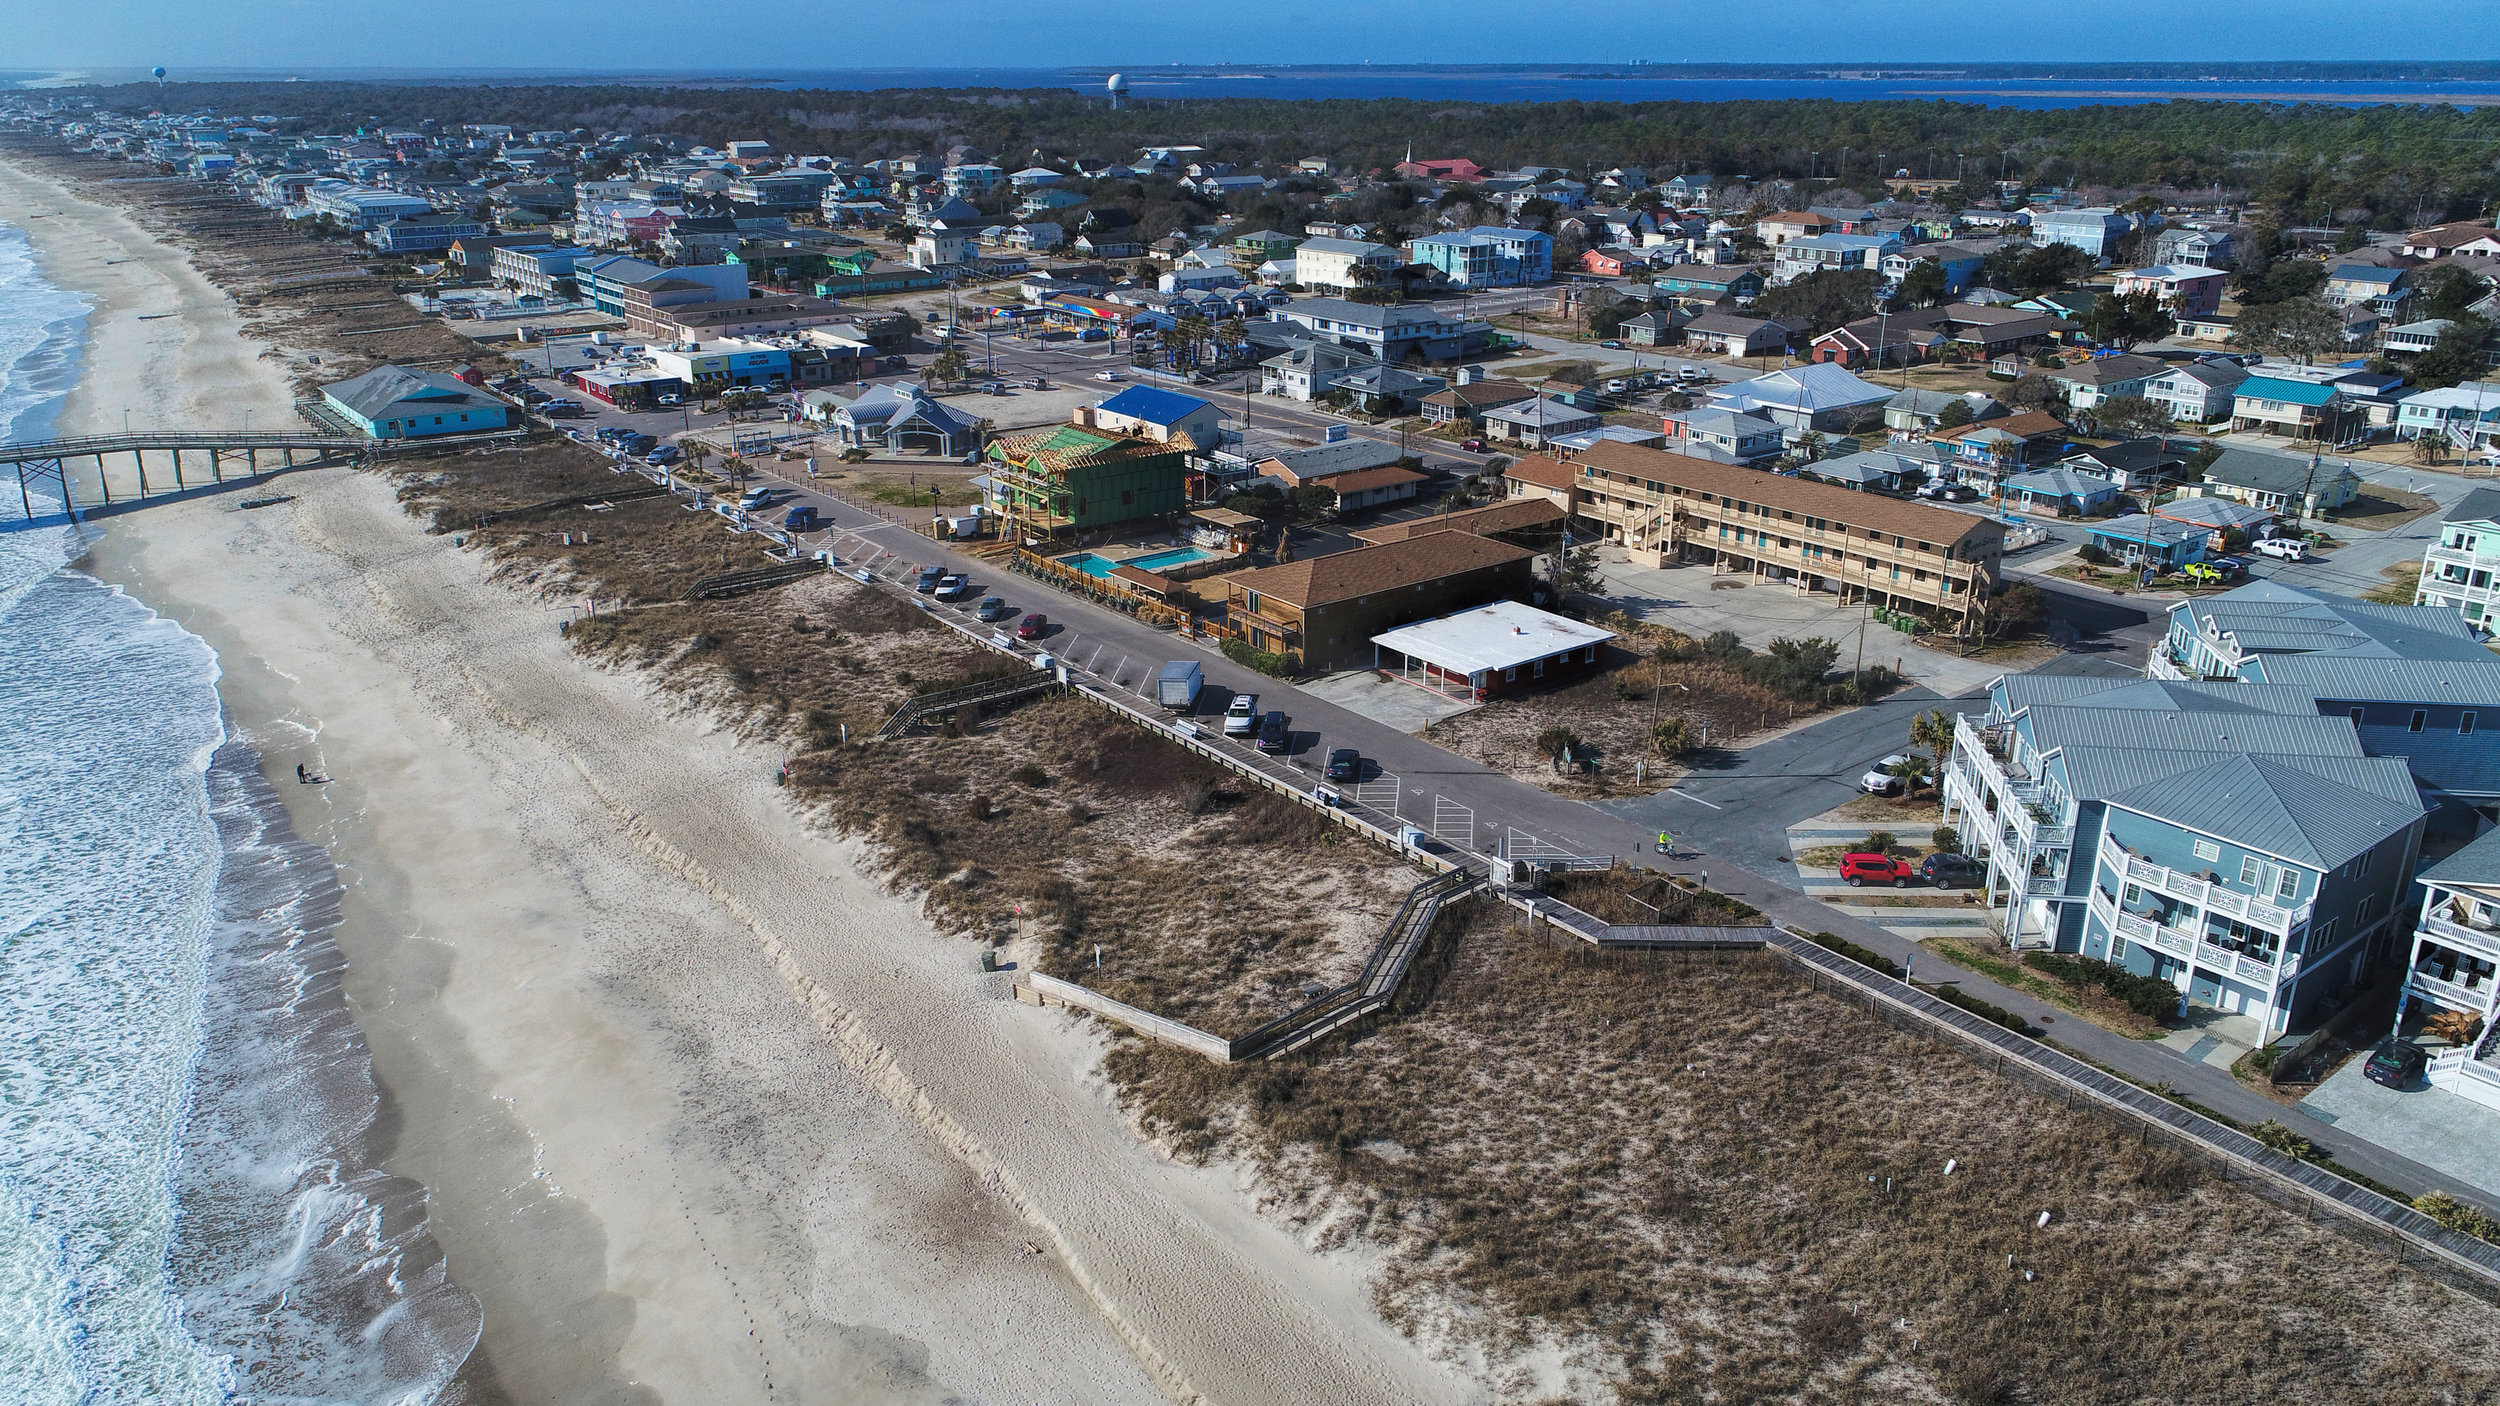 202 N Fort Fisher Blvd Unit 8-print-040-53-Kure Beach Villas and Downtown-4200x2363-300dpi.jpg